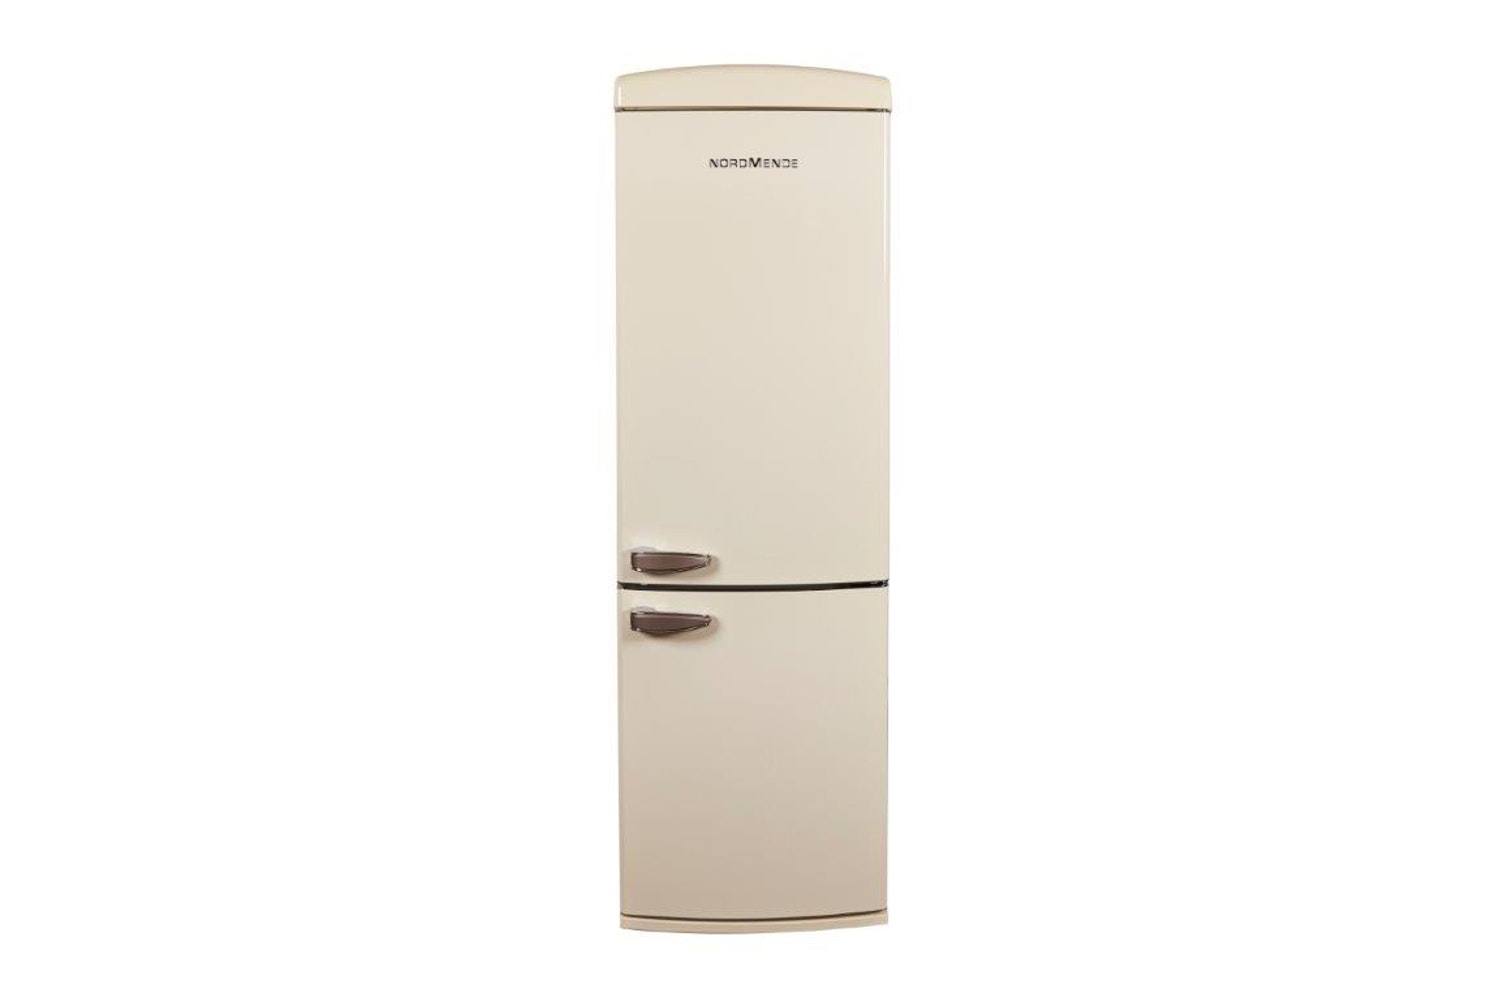 Nordmende Retro Freestanding Fridge Freezer | RETNF368CA+